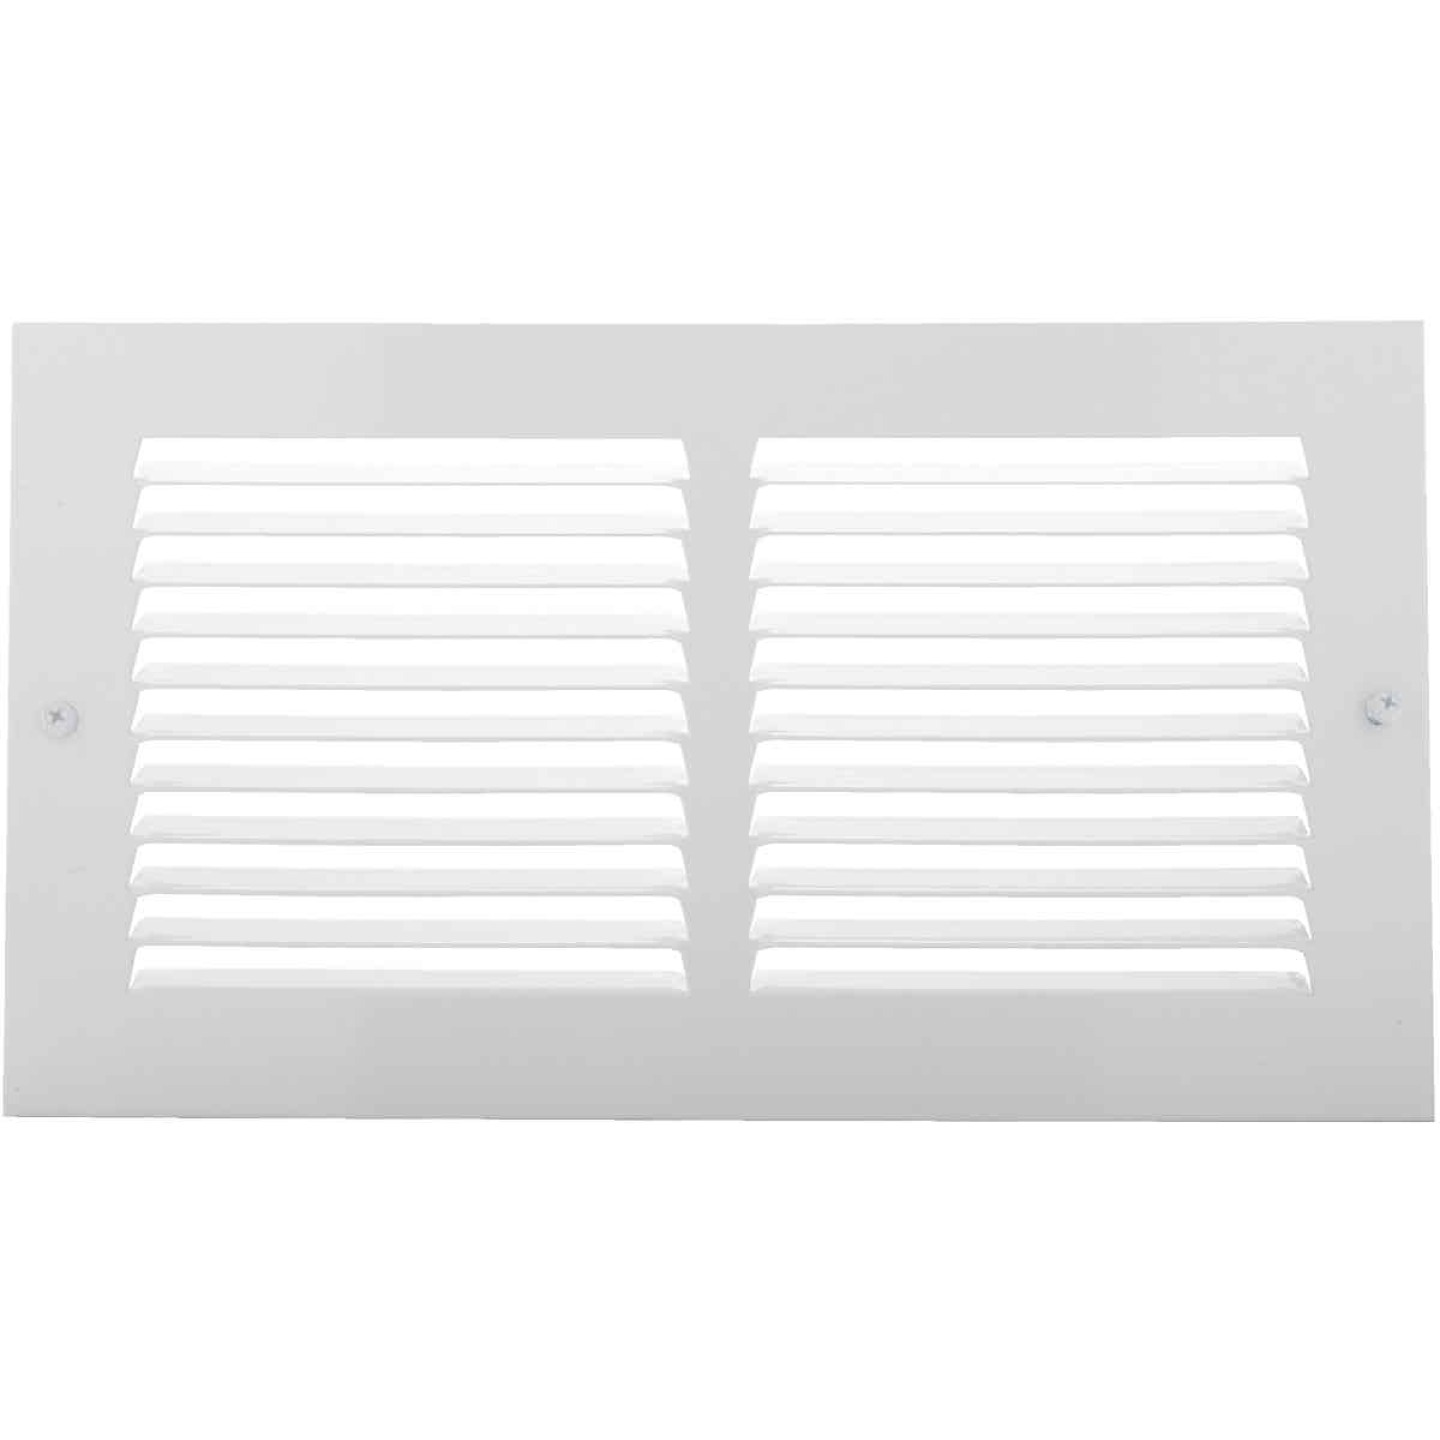 Home Impressions 6 In. x 12 In. Stamped Steel Return Air Grille Image 1